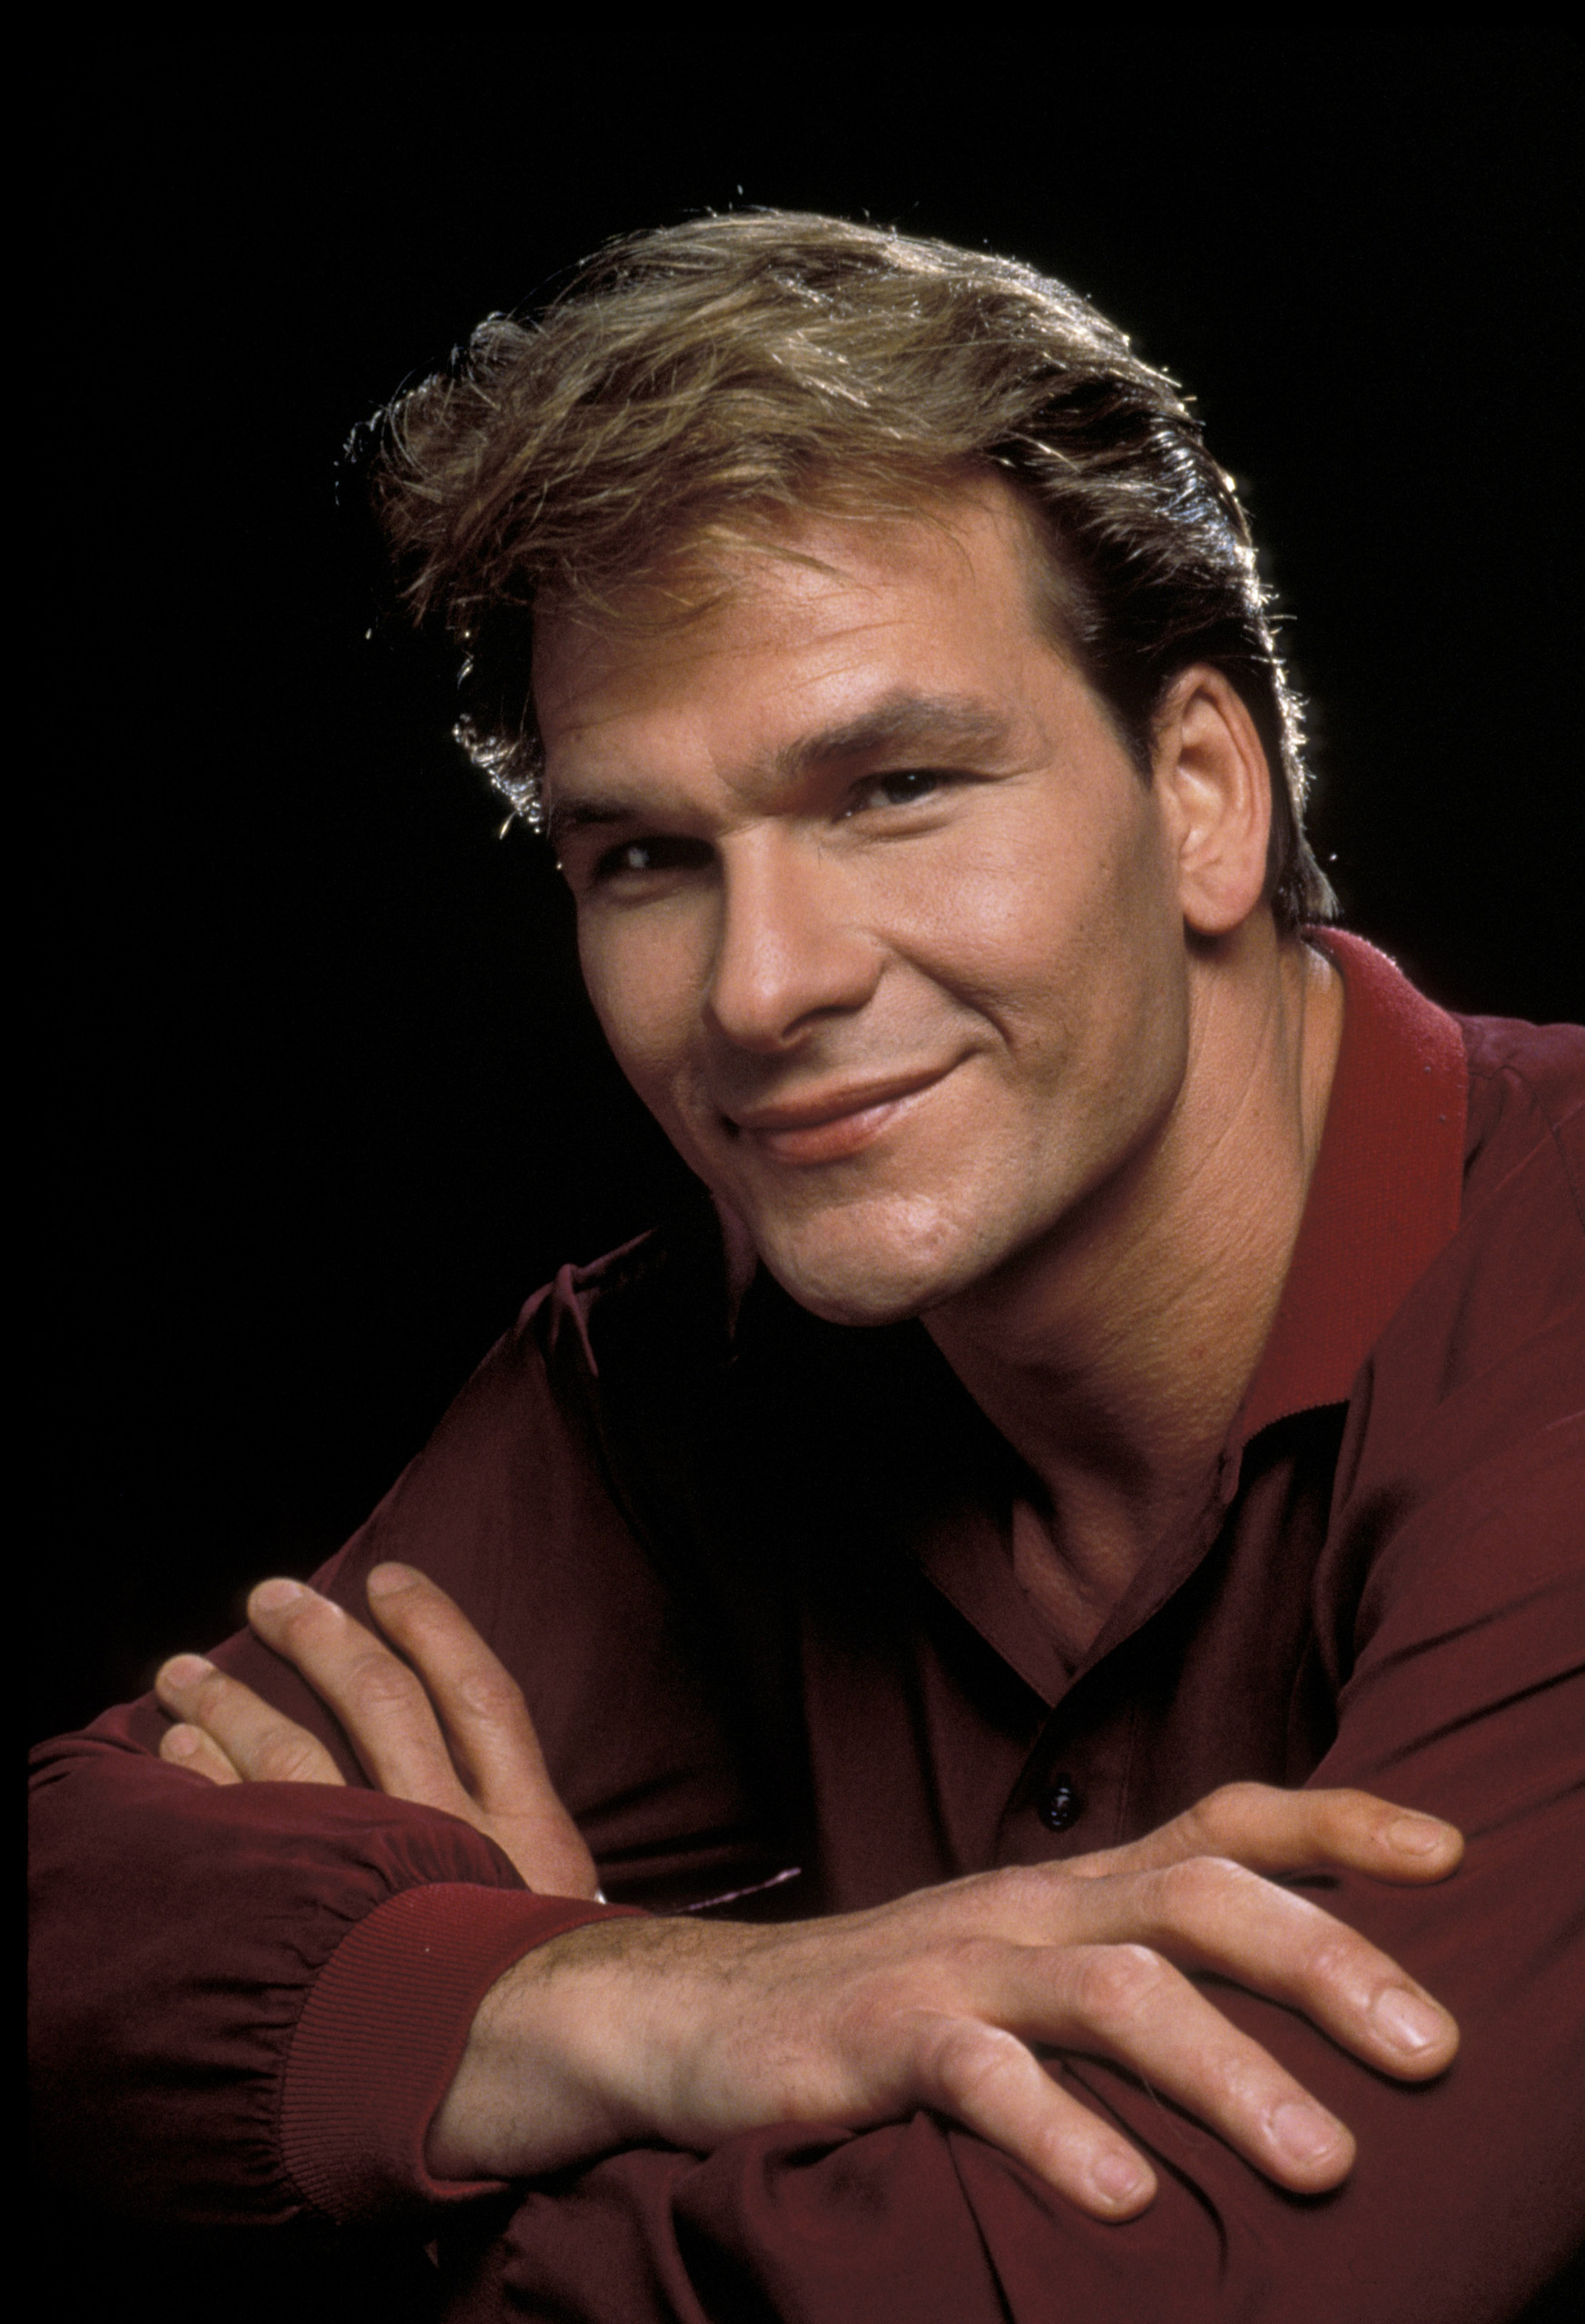 patrick swayze Actor patrick swayze, 57, has died of pancreatic cancer.